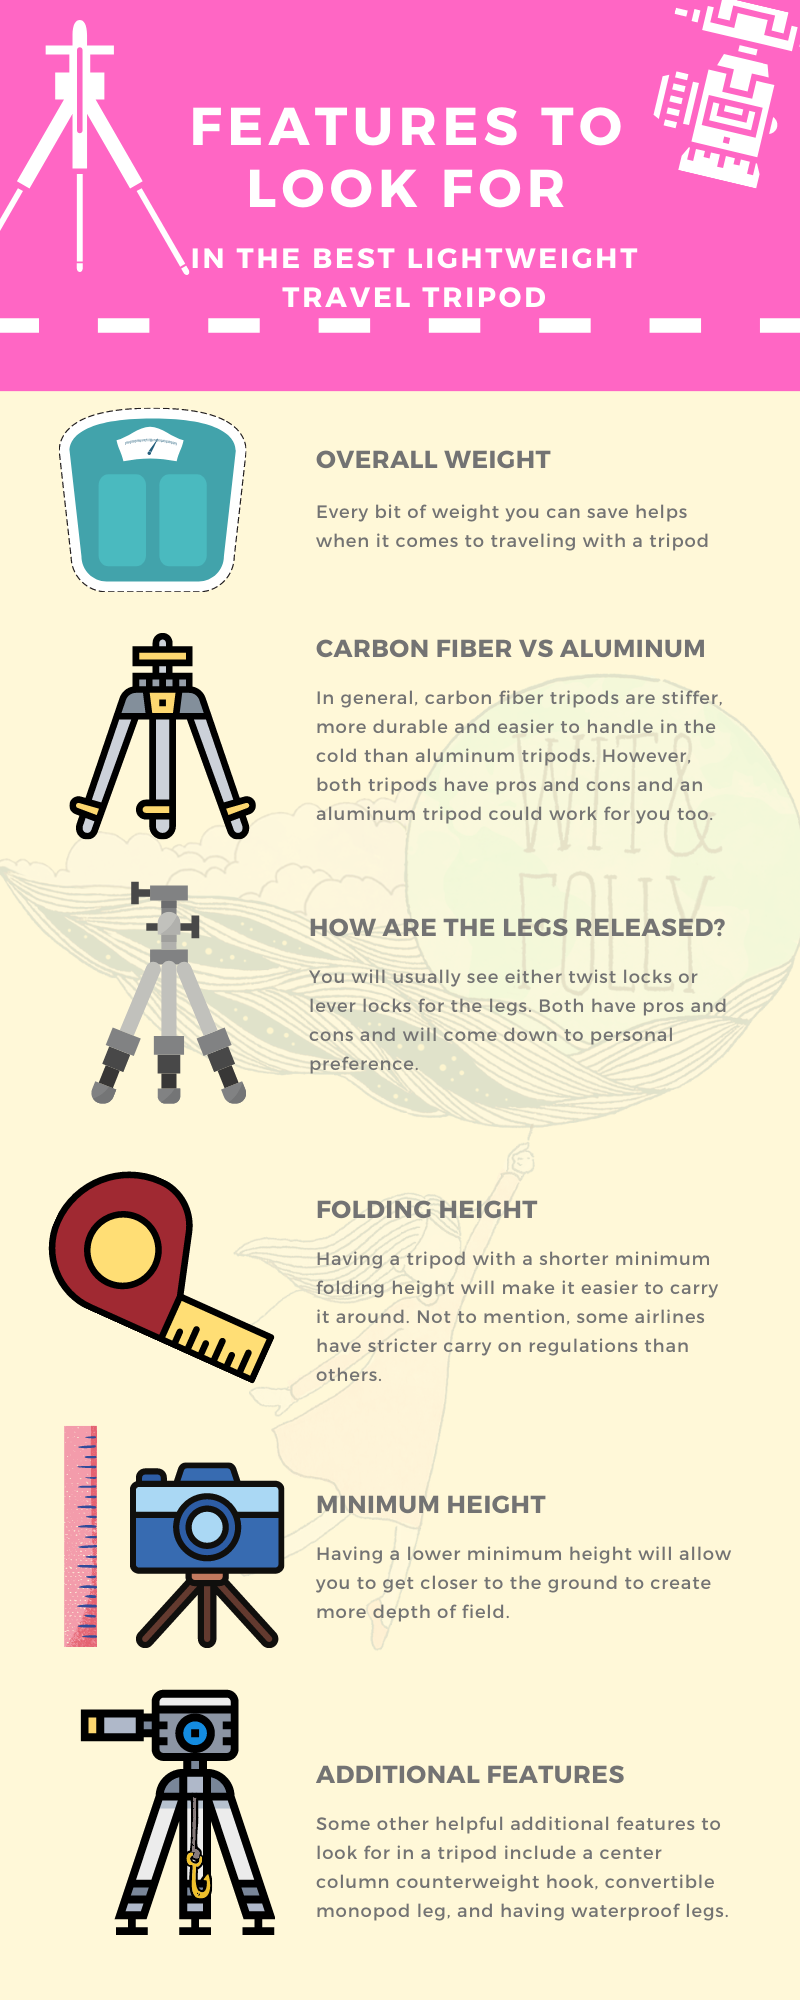 infographic showing the different features to look for in a lightweight travel tripod